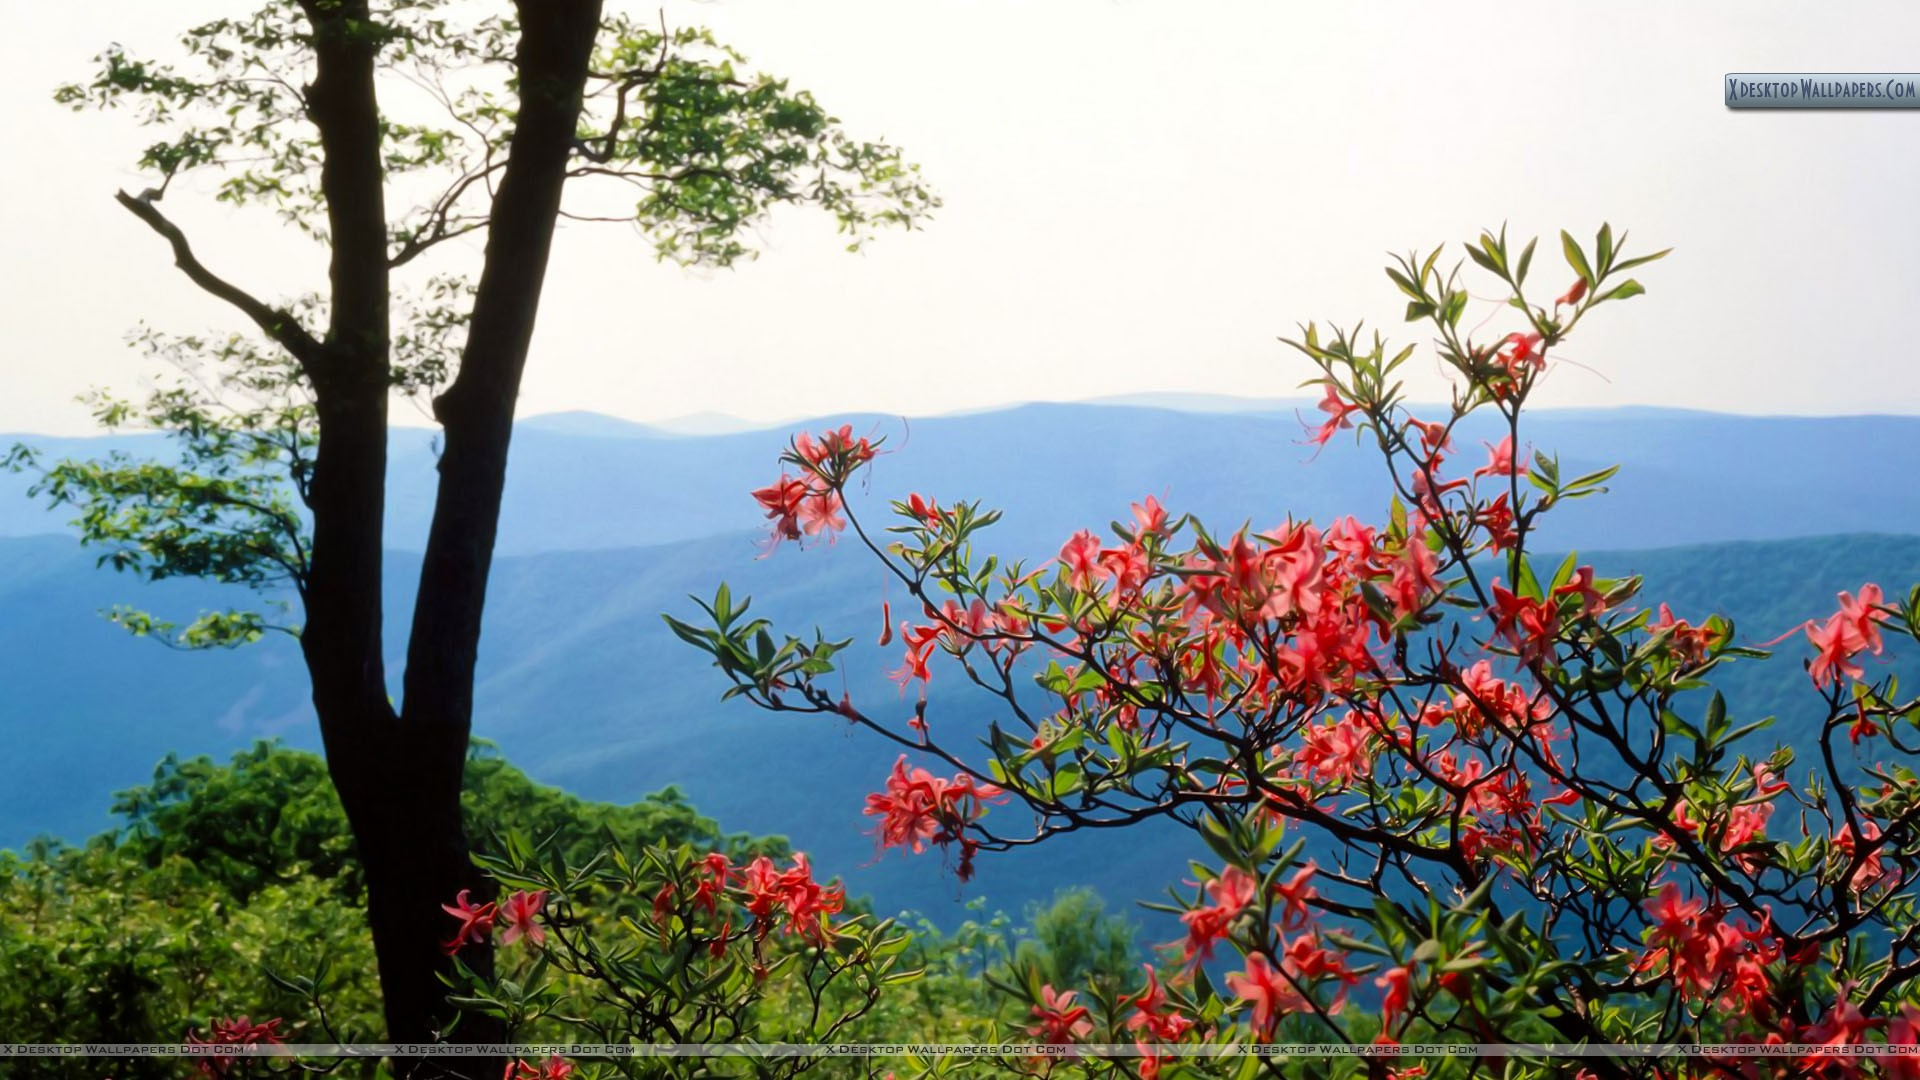 you are viewing wallpaper titled blue ridge mountains north carolina